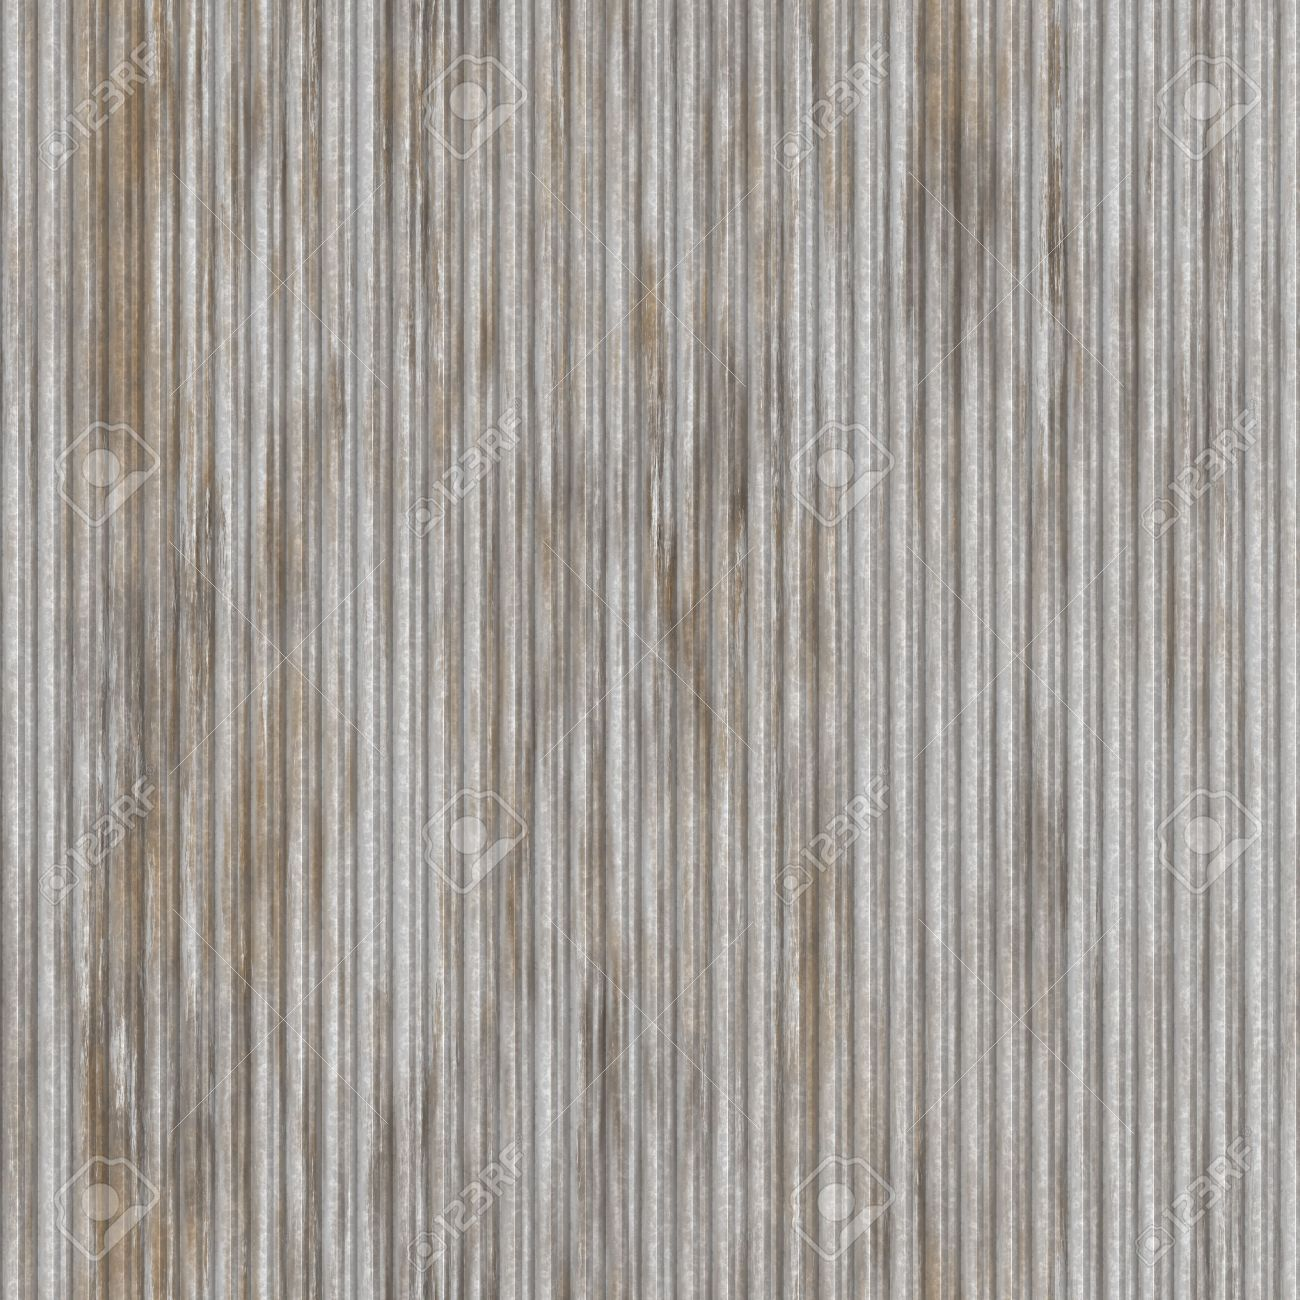 Corrugated metal ridged surface with corrosion seamless texture Stock Photo  5907415  Corrugated Metal Ridged Surface. Corrugated Metal Seamless Texture